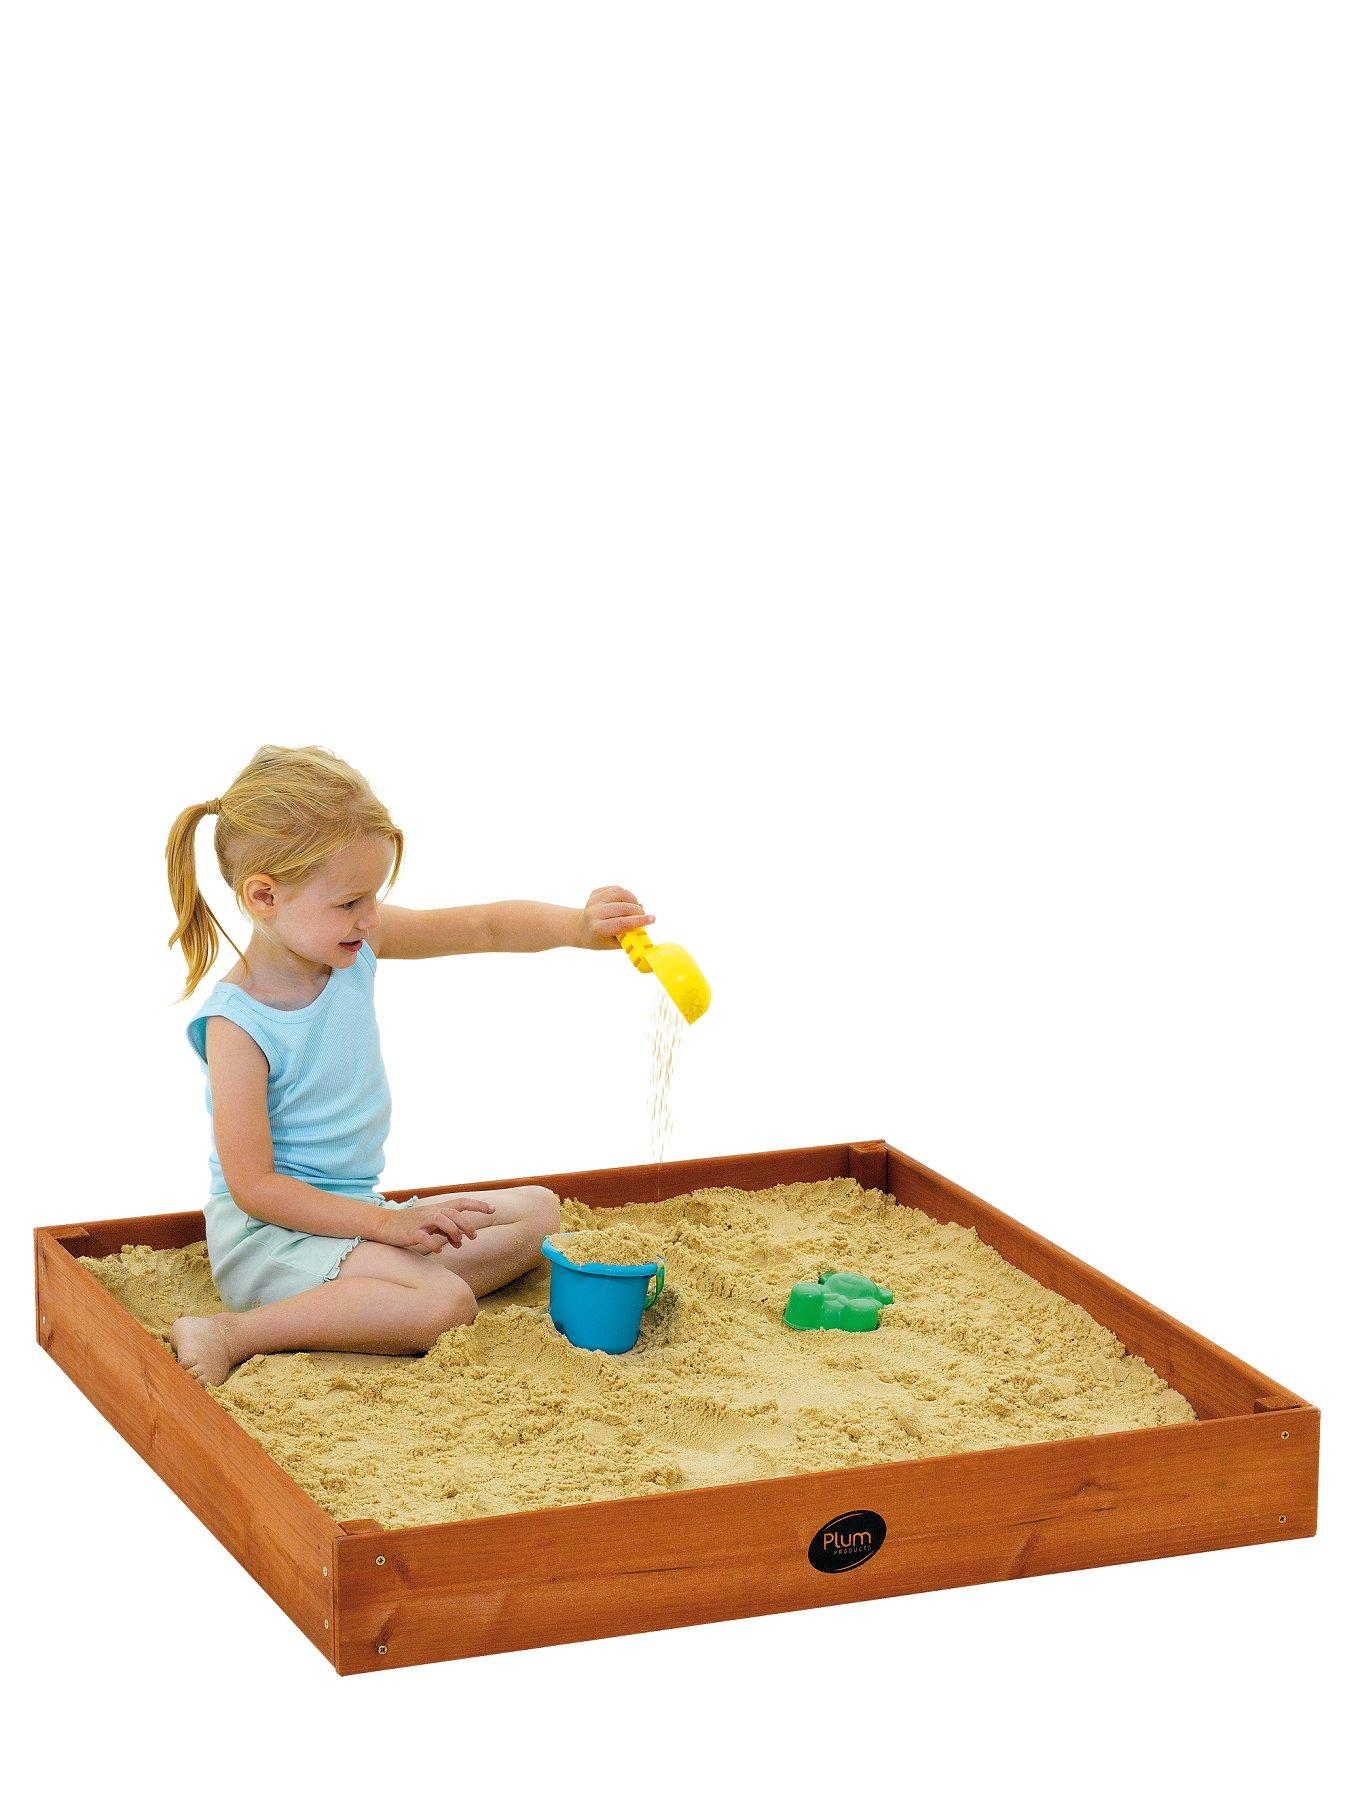 Junior Wooden Sand Pit